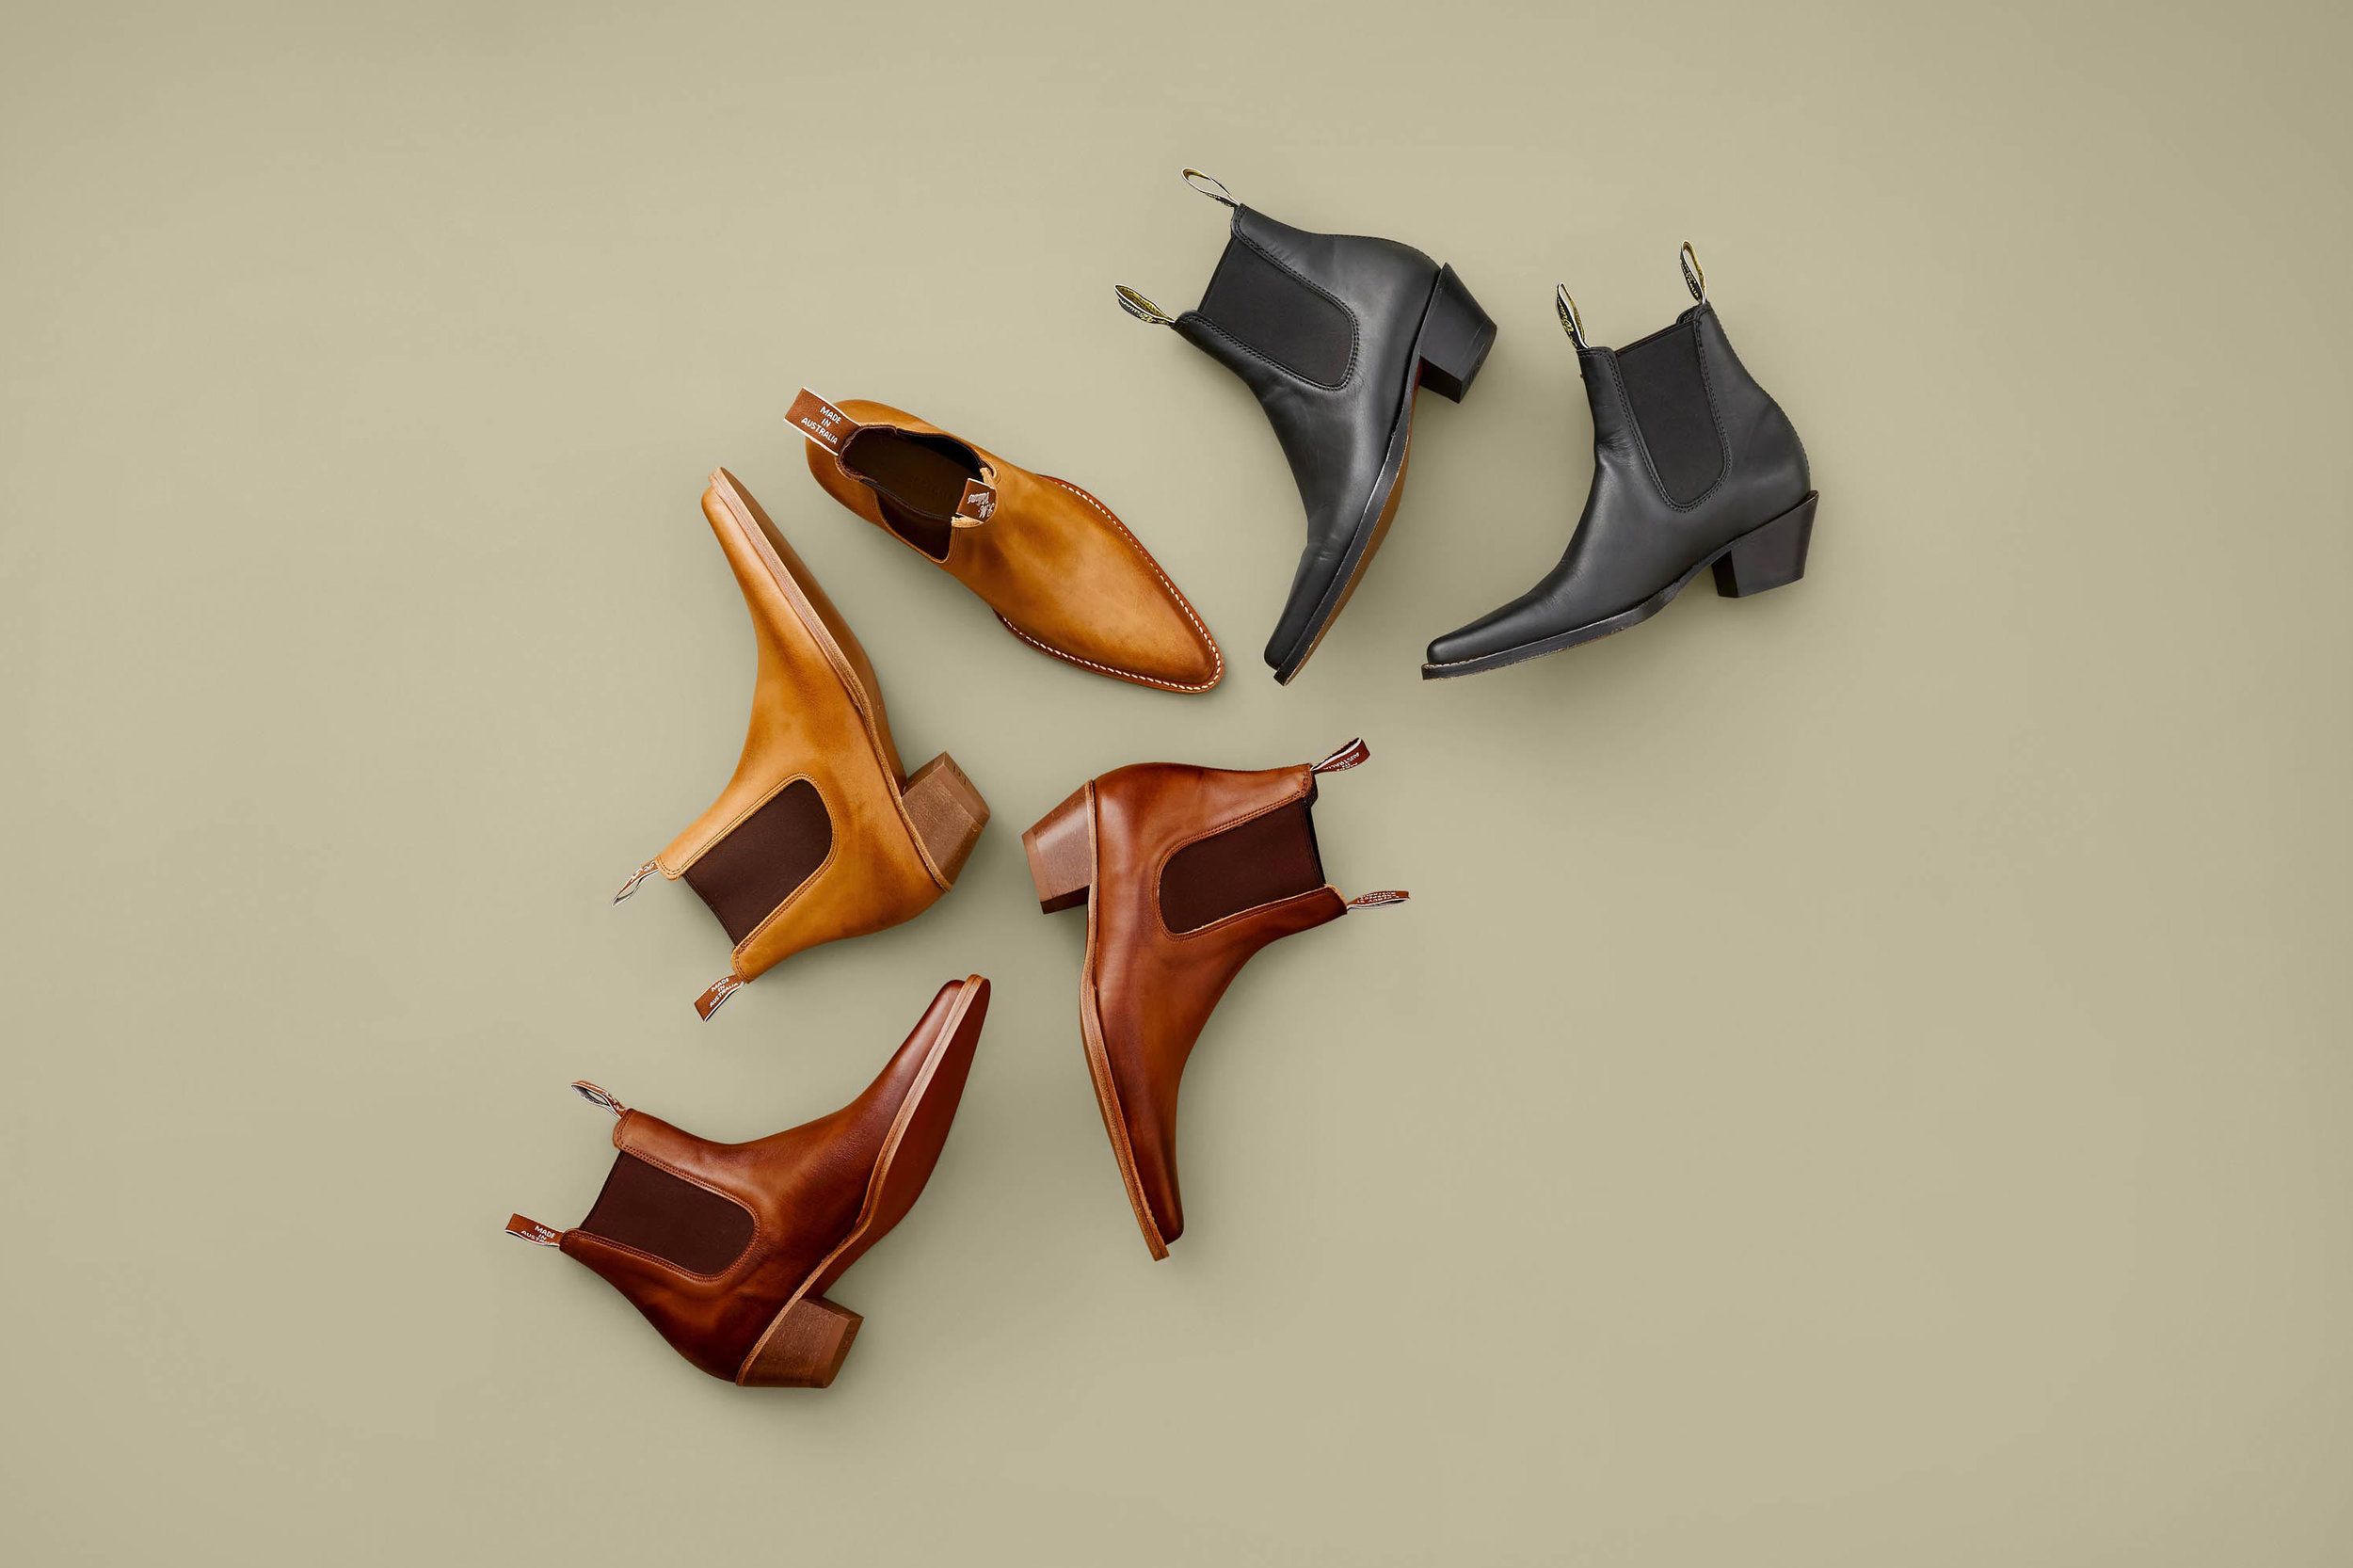 Womens RM Williams flatlay boots, photographed and retouched on a flat surface